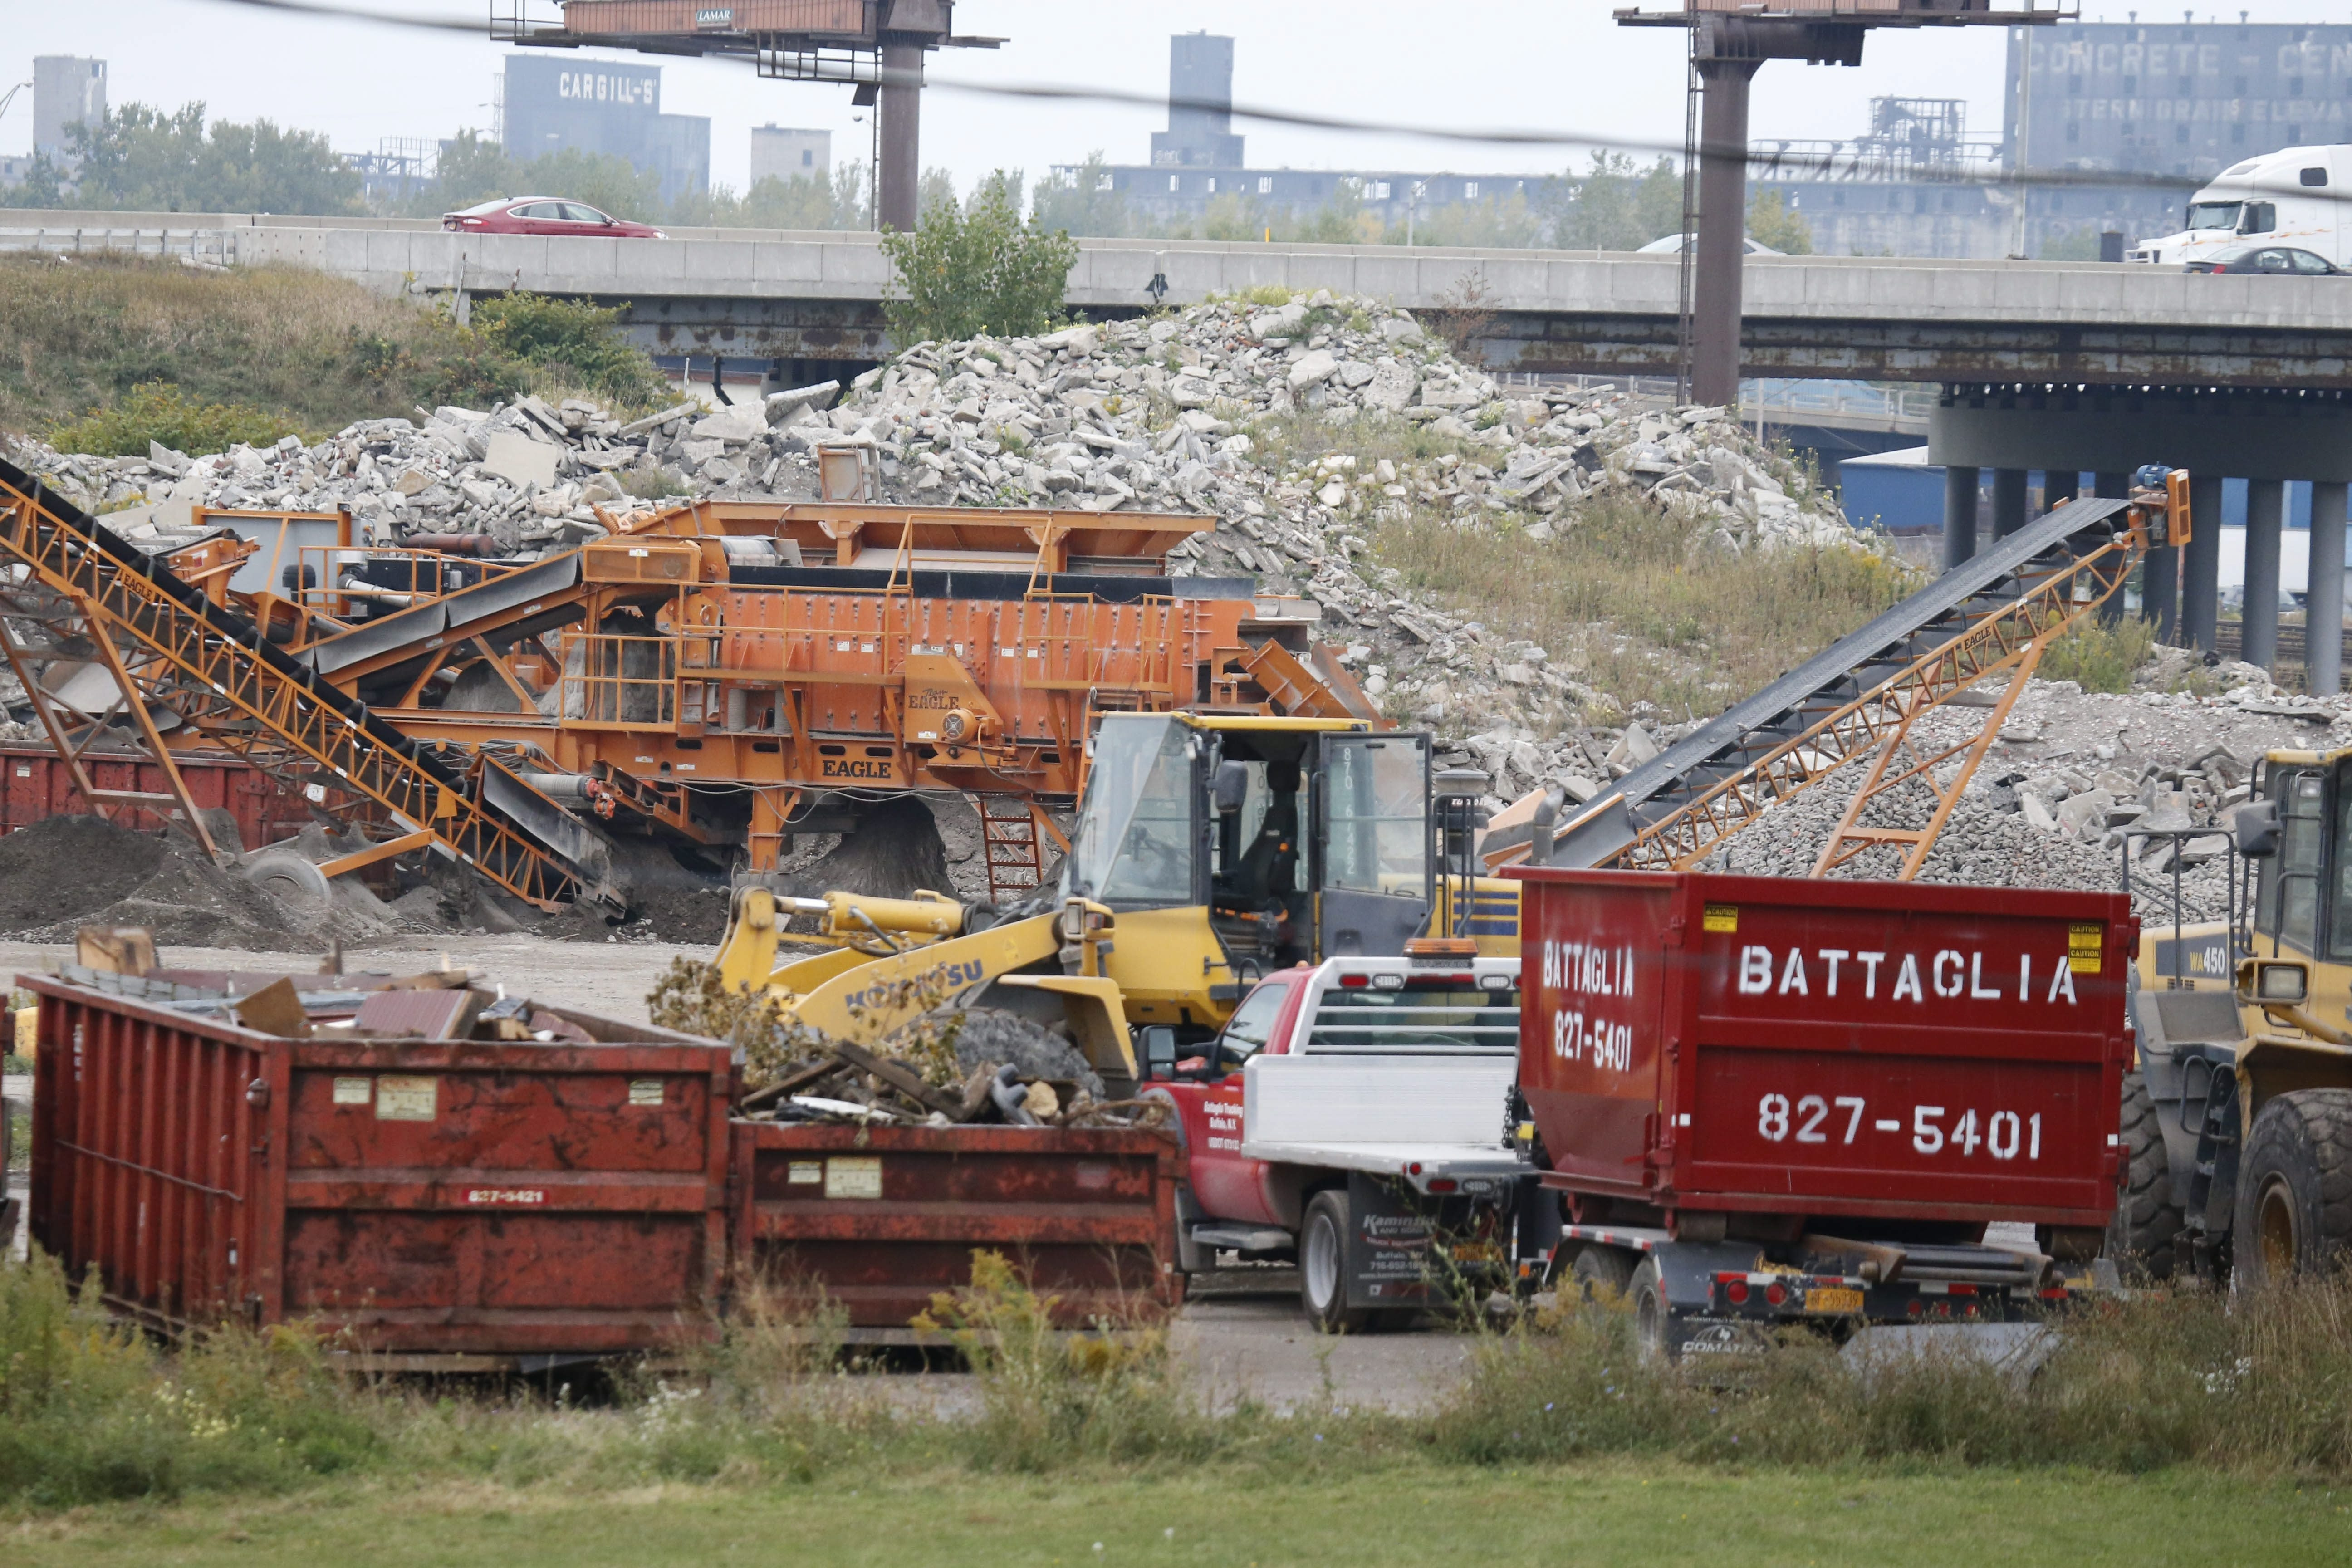 Battaglia Demolition, a waste-recycling business in the Seneca-Babcock neighborhood, is facing a lawsuit from the state attorney general.  (Derek Gee/Buffalo News file photo)